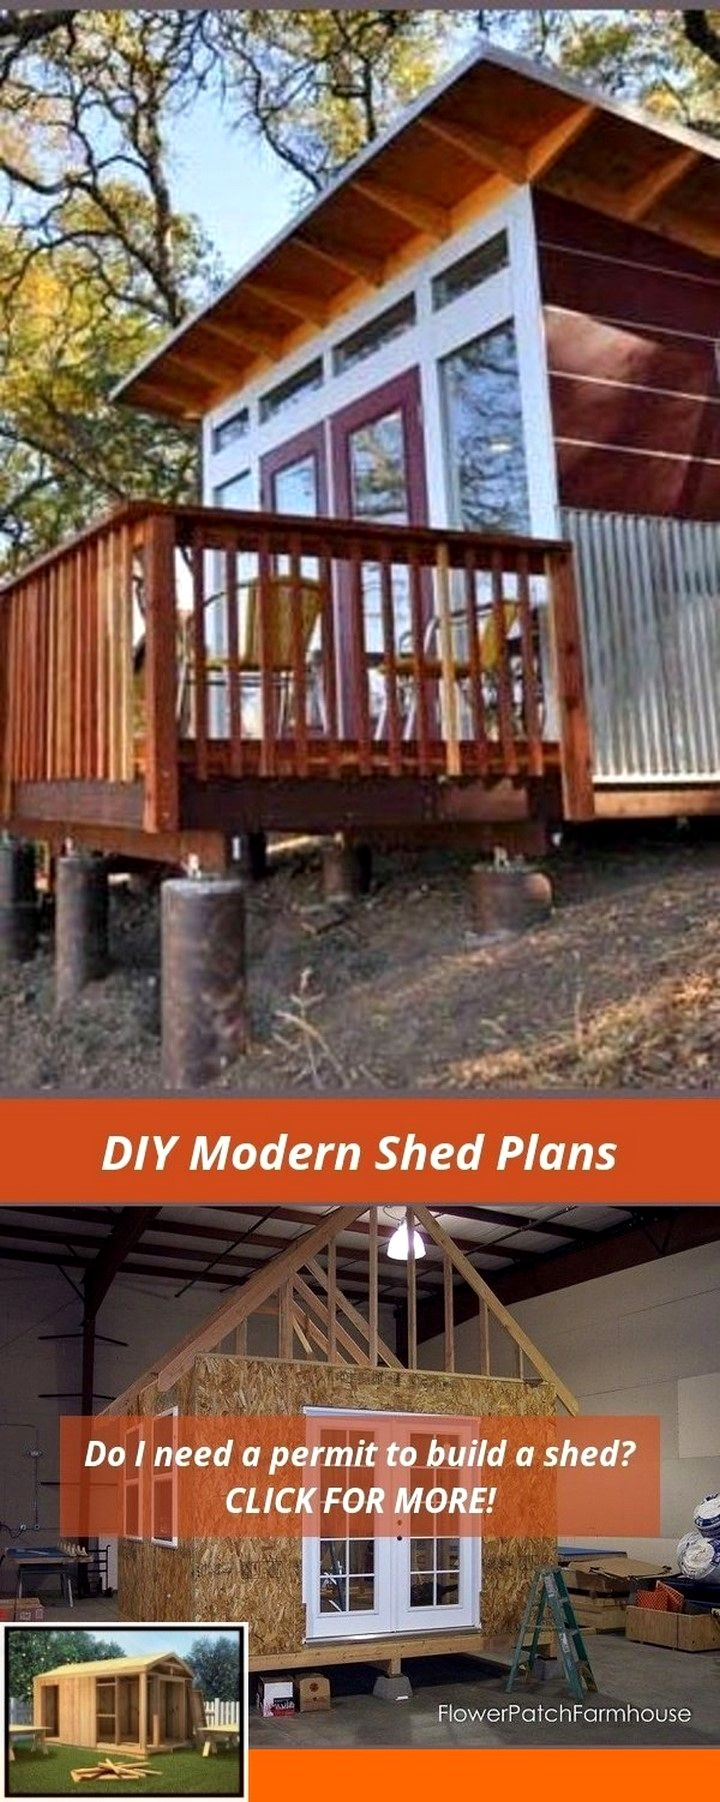 Diy loafing shed plans how much does a 12x16 shed cost to